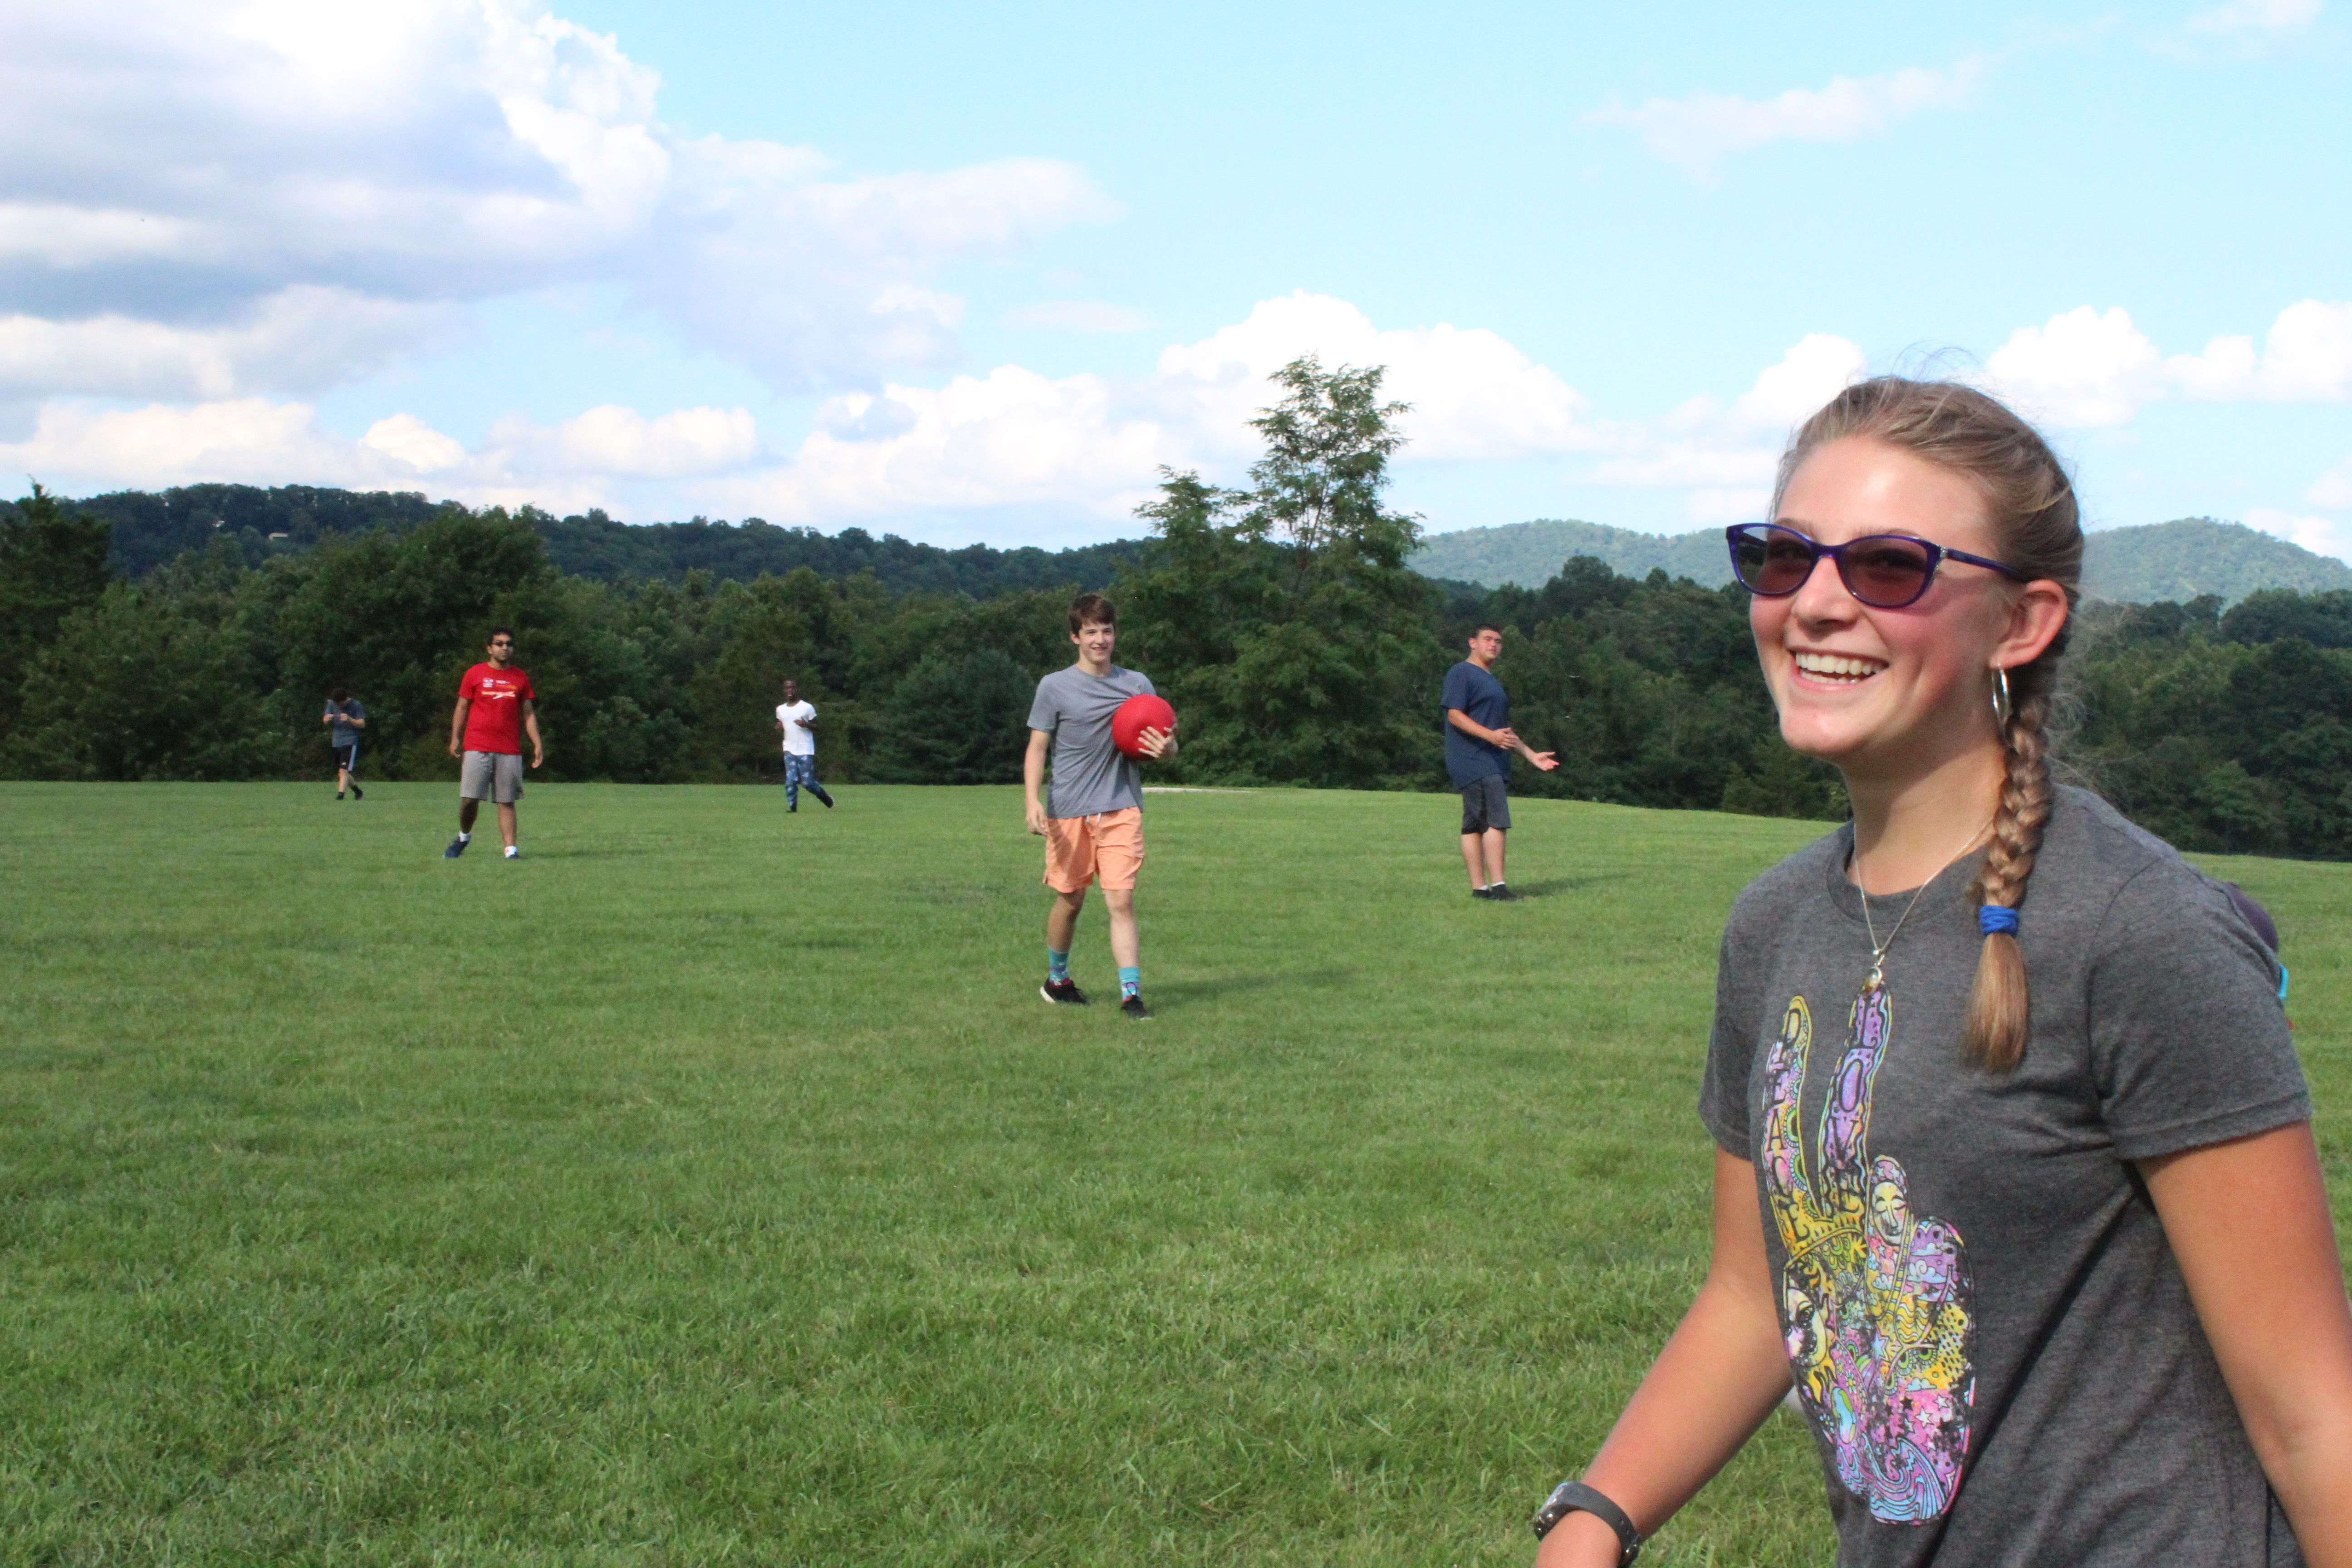 A camper smiles during a game of kickball.